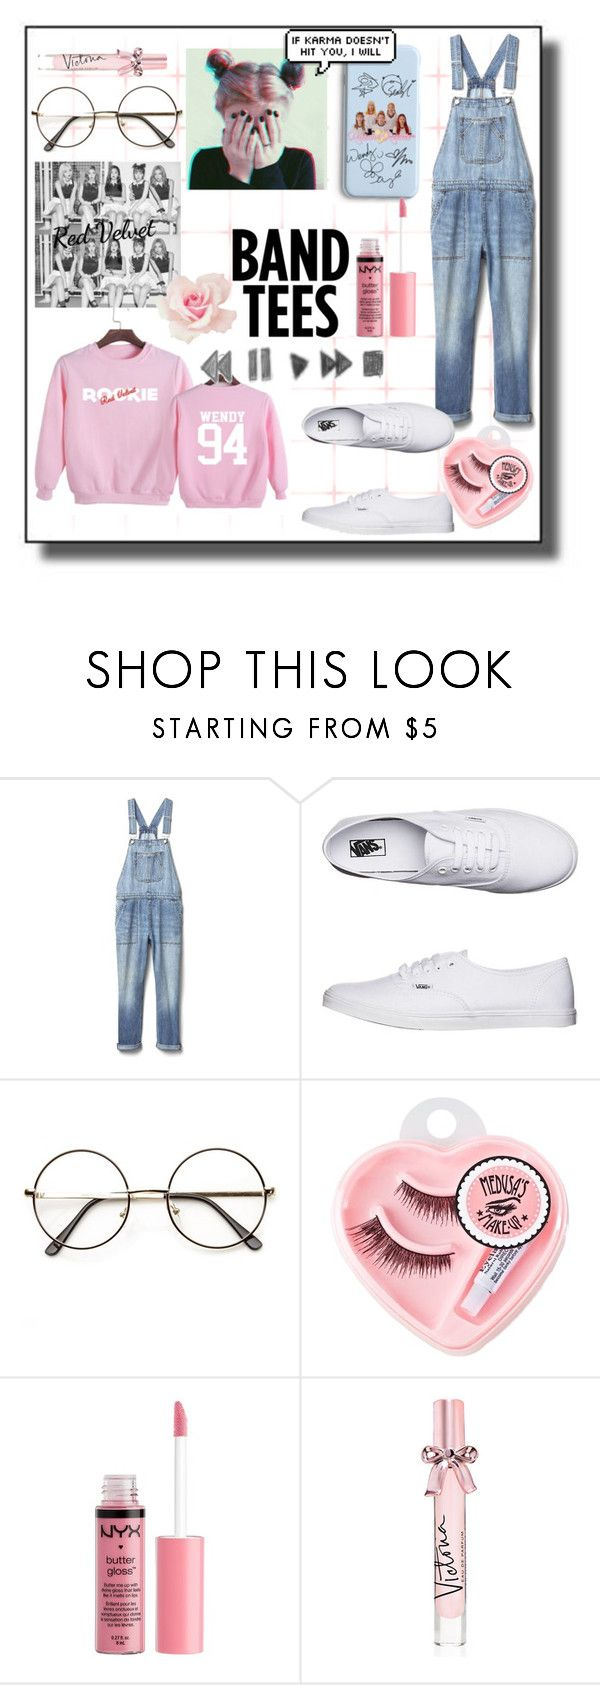 """""""Band Tees: Red Velvet"""" by pastel-crybaby ❤ liked on Polyvore featuring Gap, Vans, Medusa's Makeup, Charlotte Russe, Victoria's Secret, bandtees and redvelvet"""